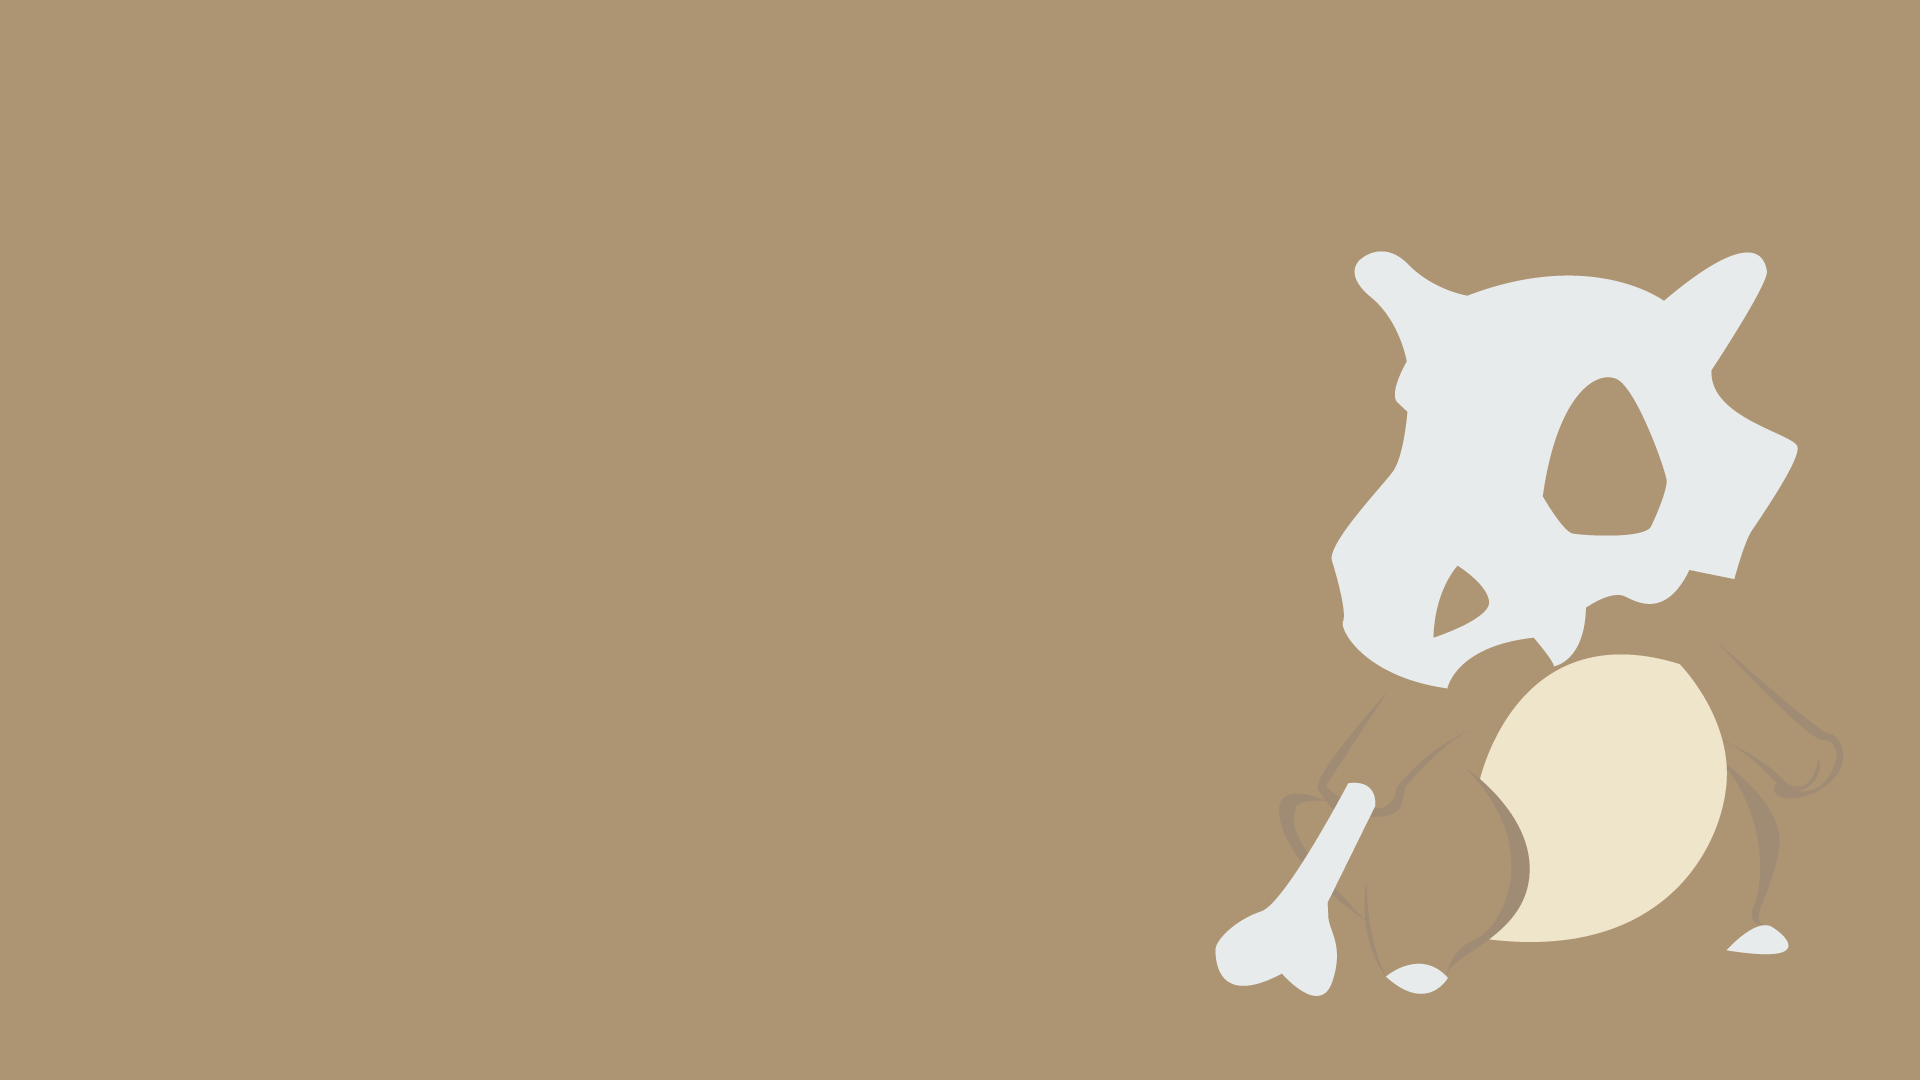 Pokemon Cubone Wallpaper 1920x1080 Pokemon Cubone Marowak 1920x1080